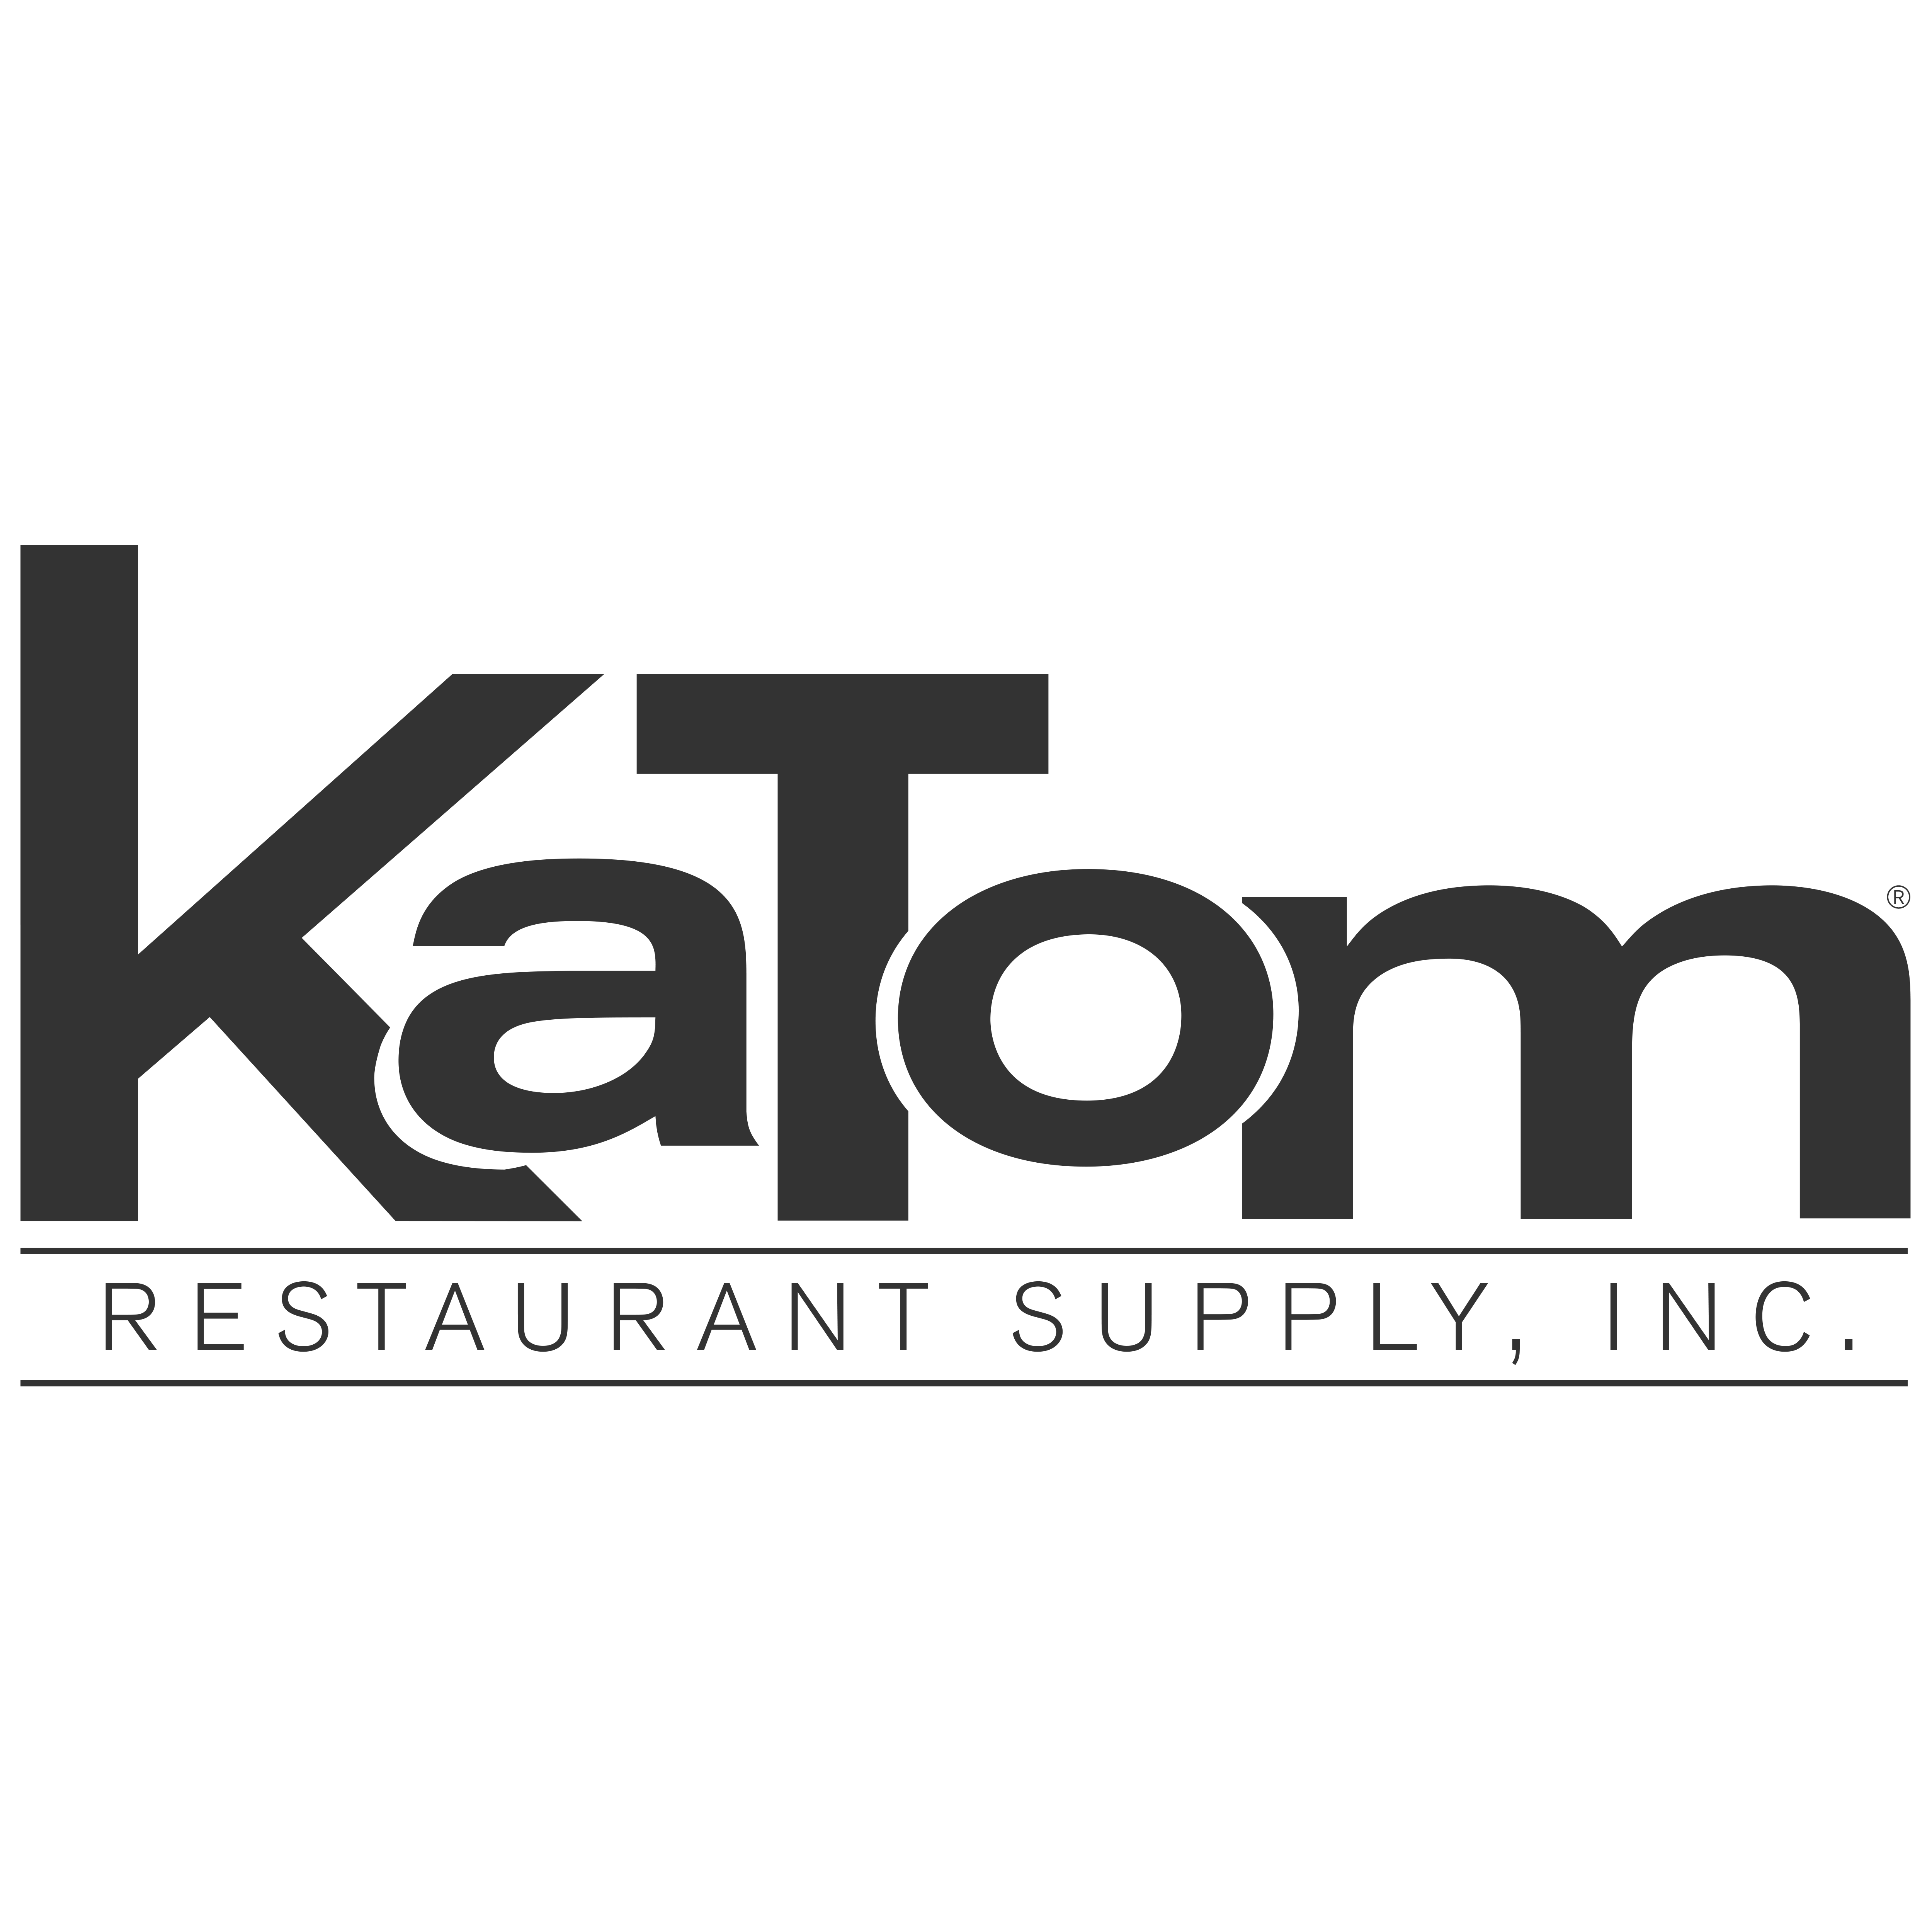 Katom Restaurant Supply Appliance Store Kodak Tn 37764